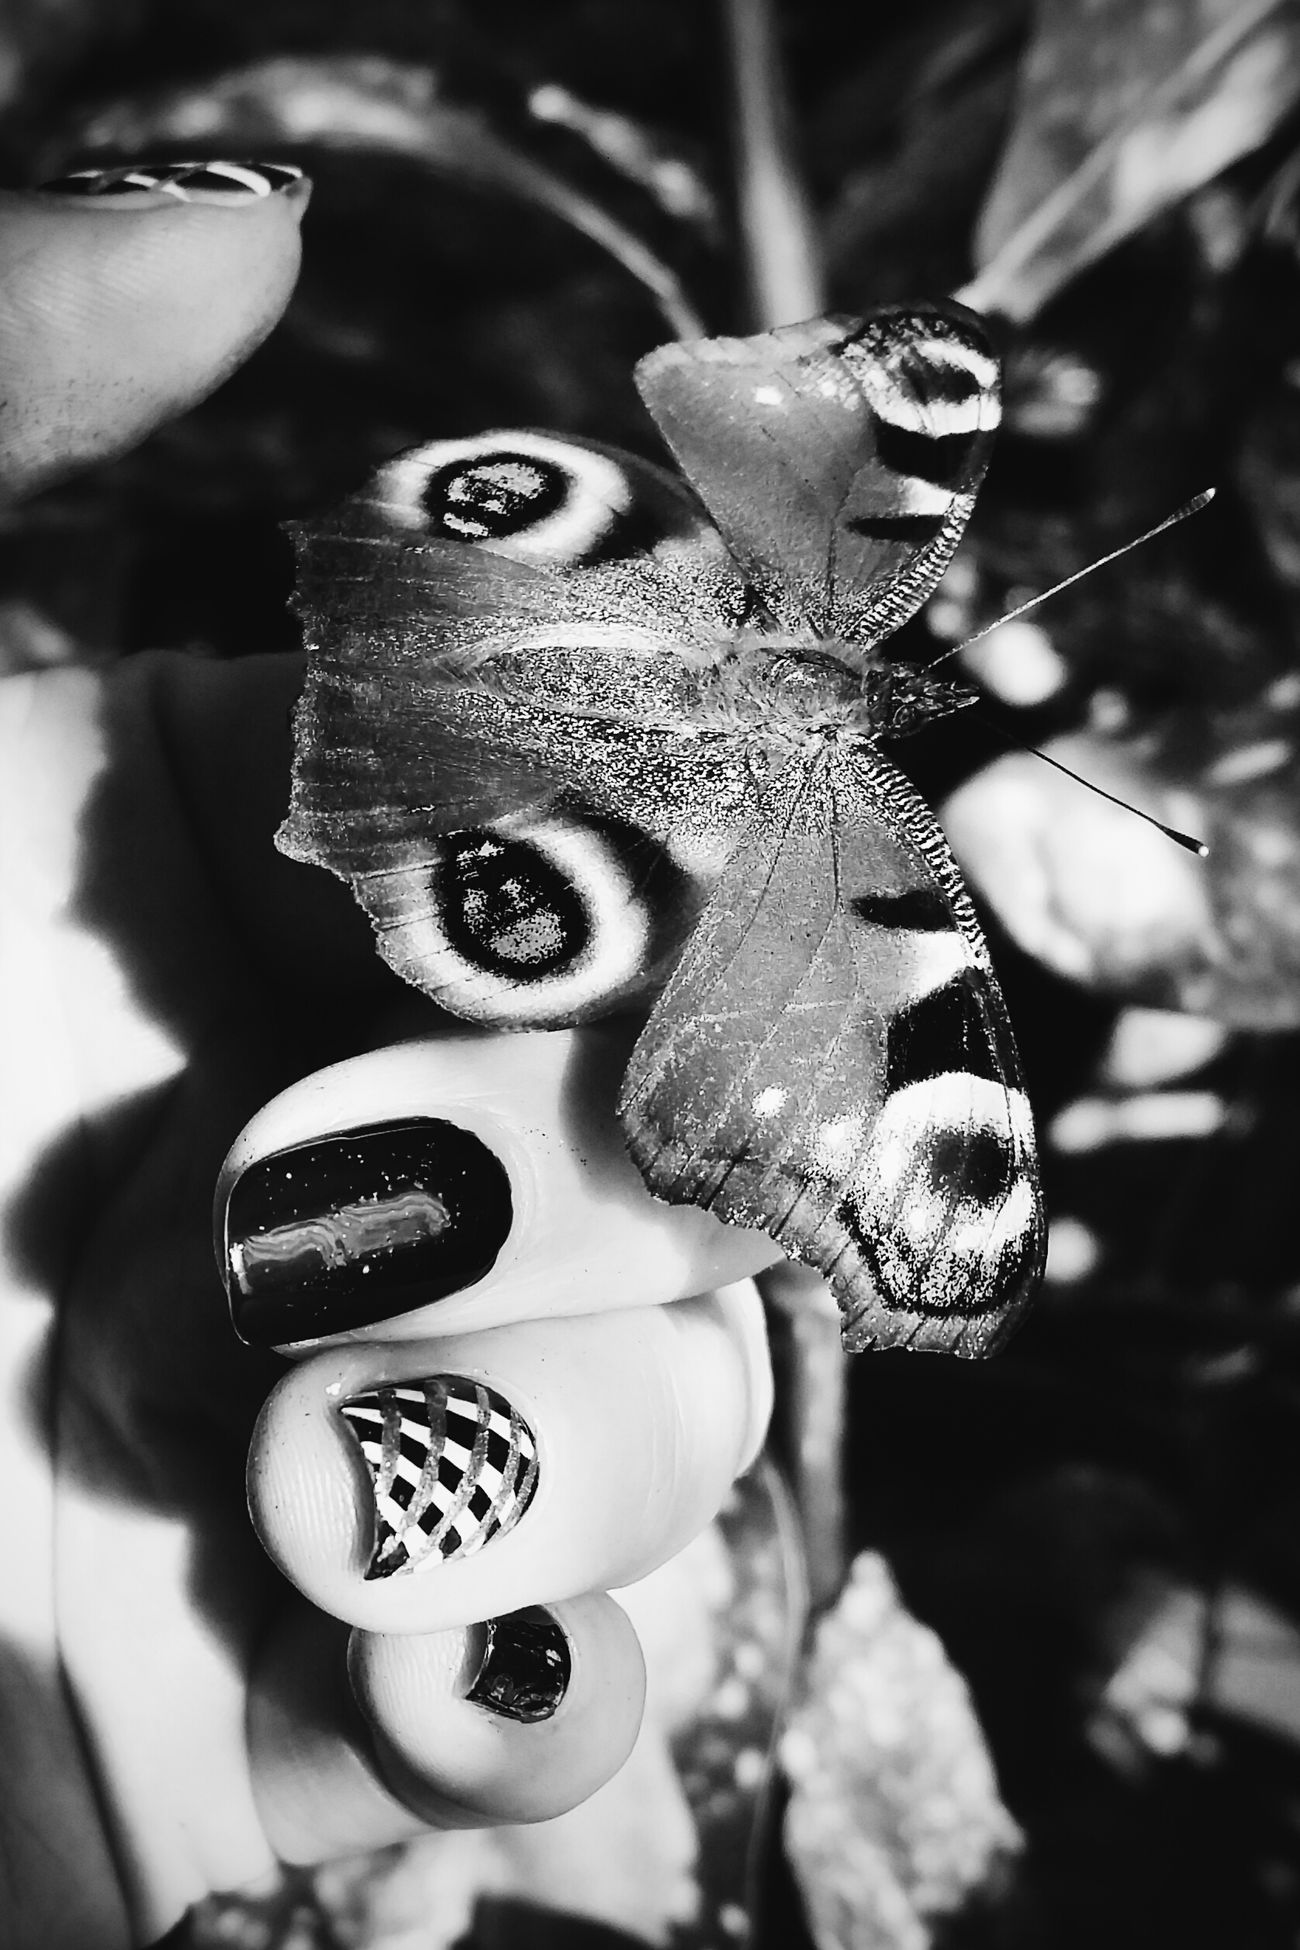 Black And White Blackandwhite Insect Photography The Five Senses